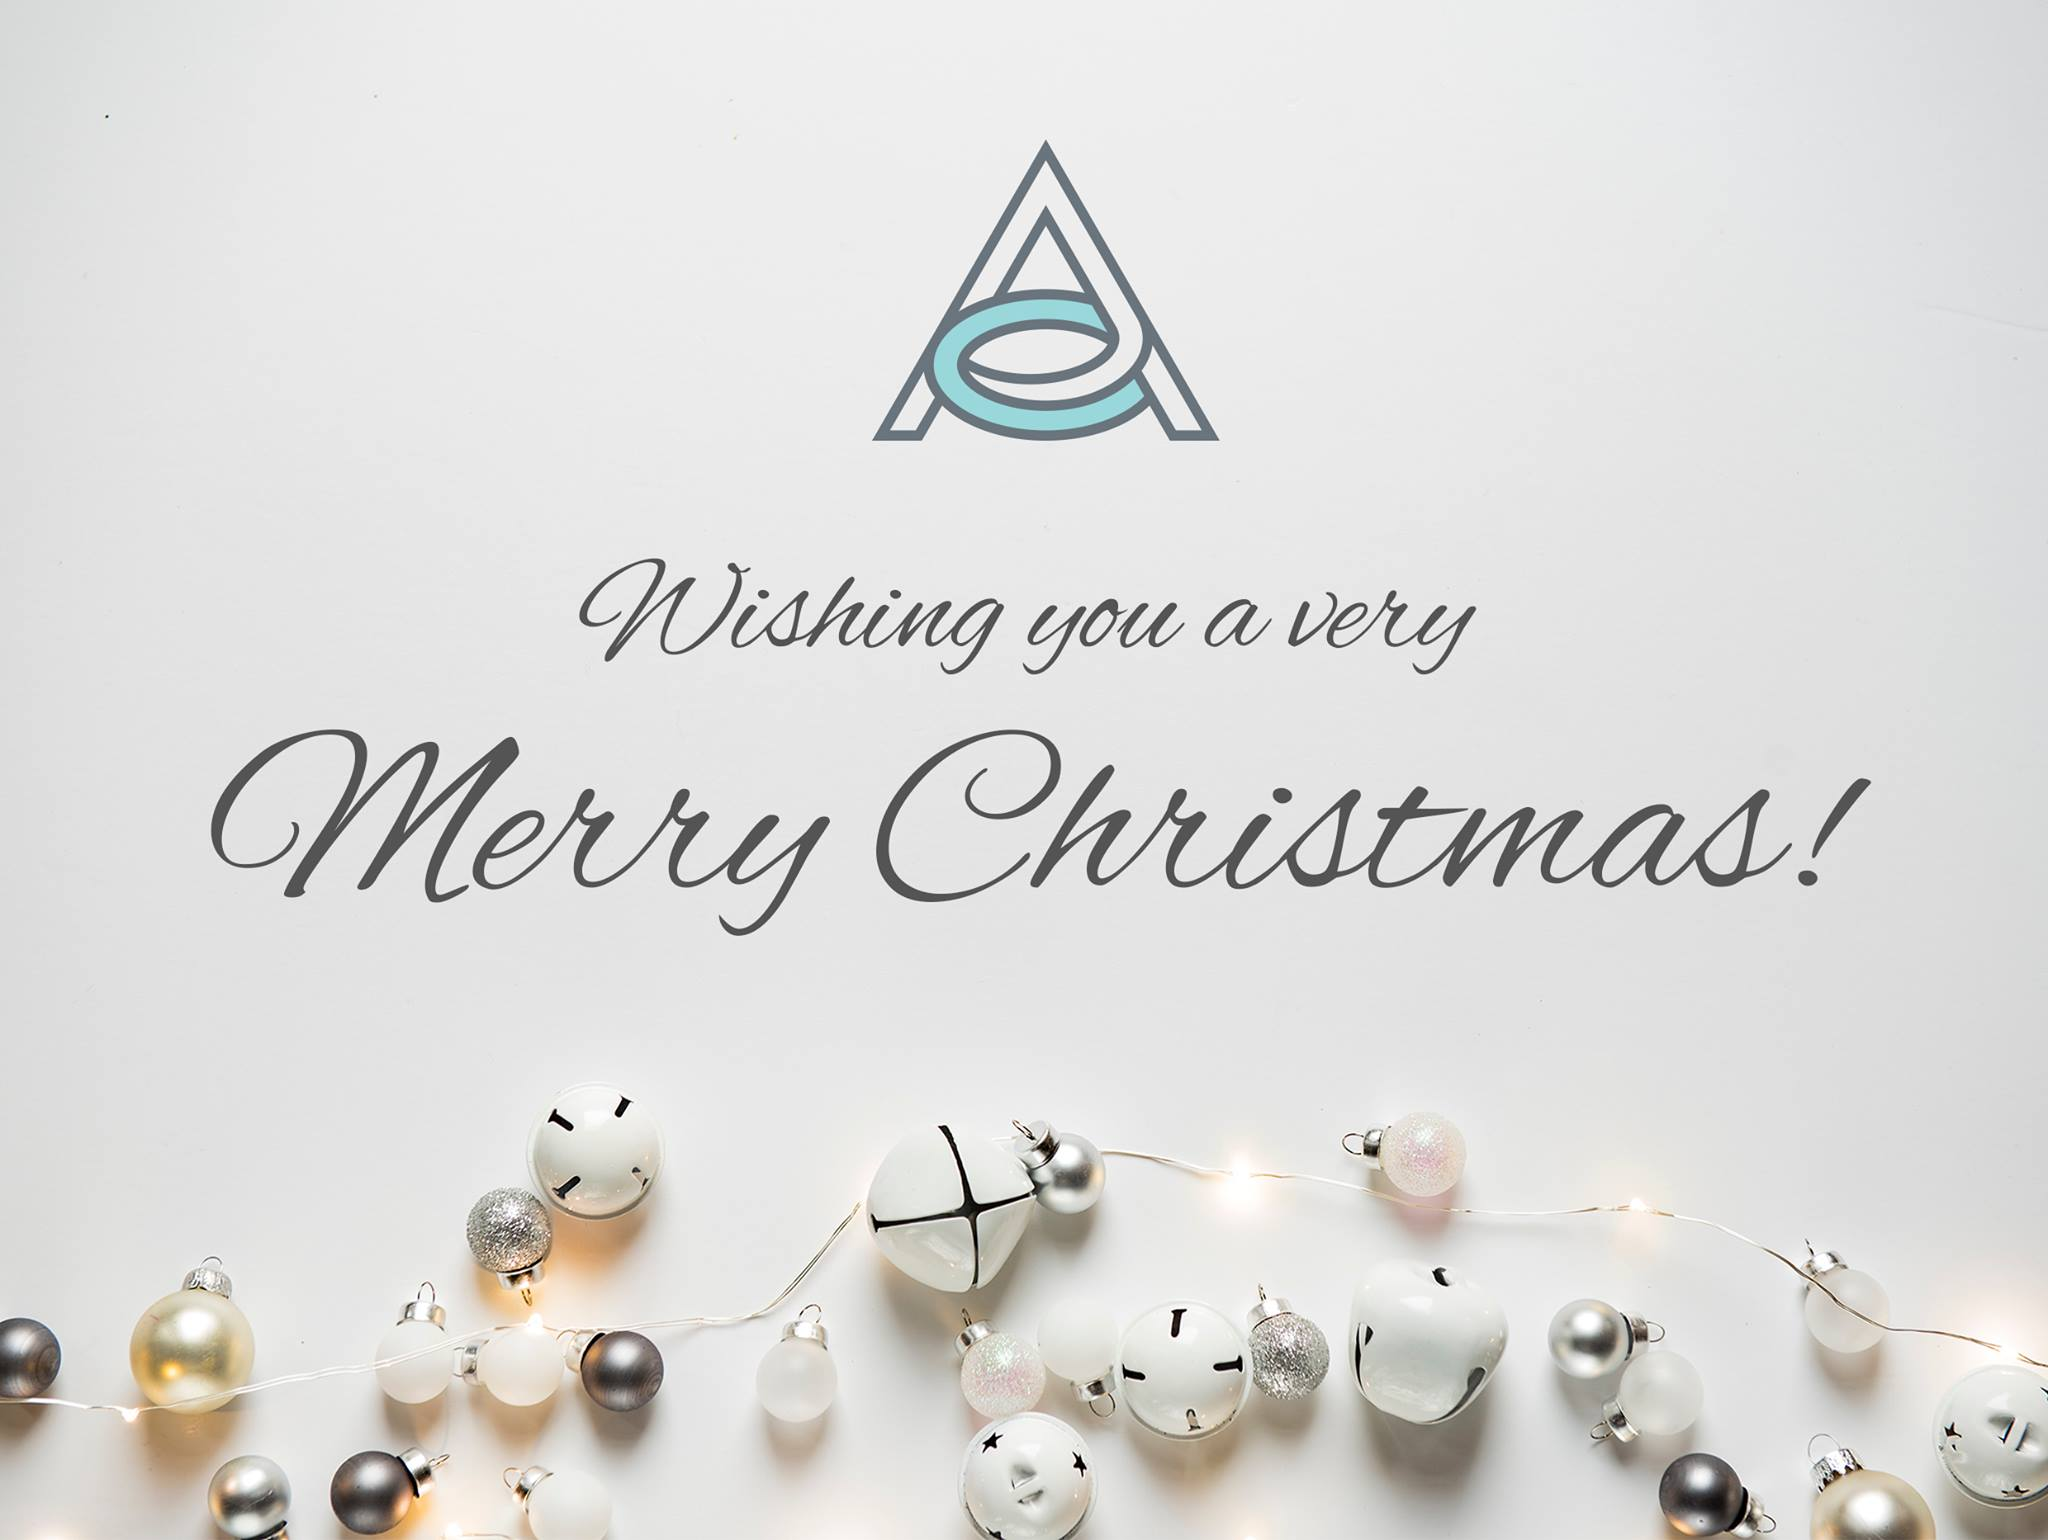 From our family to yours, Merry Christmas!